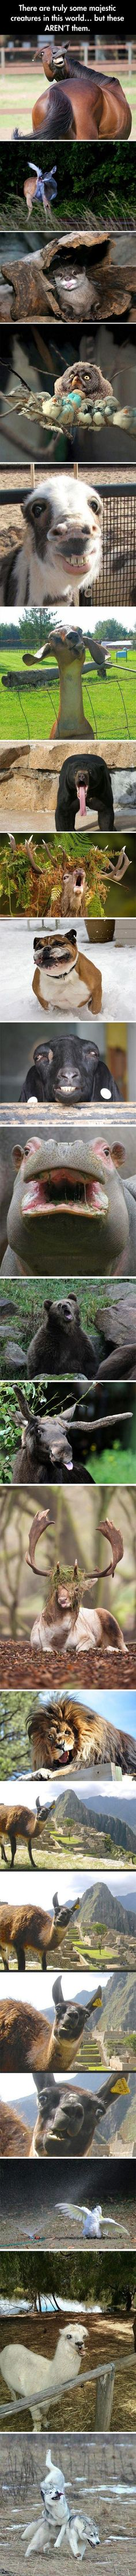 Derpy animals #Funny #animal - Visit http://dailyhaha.com/pictures.htm for daily funny pictures.